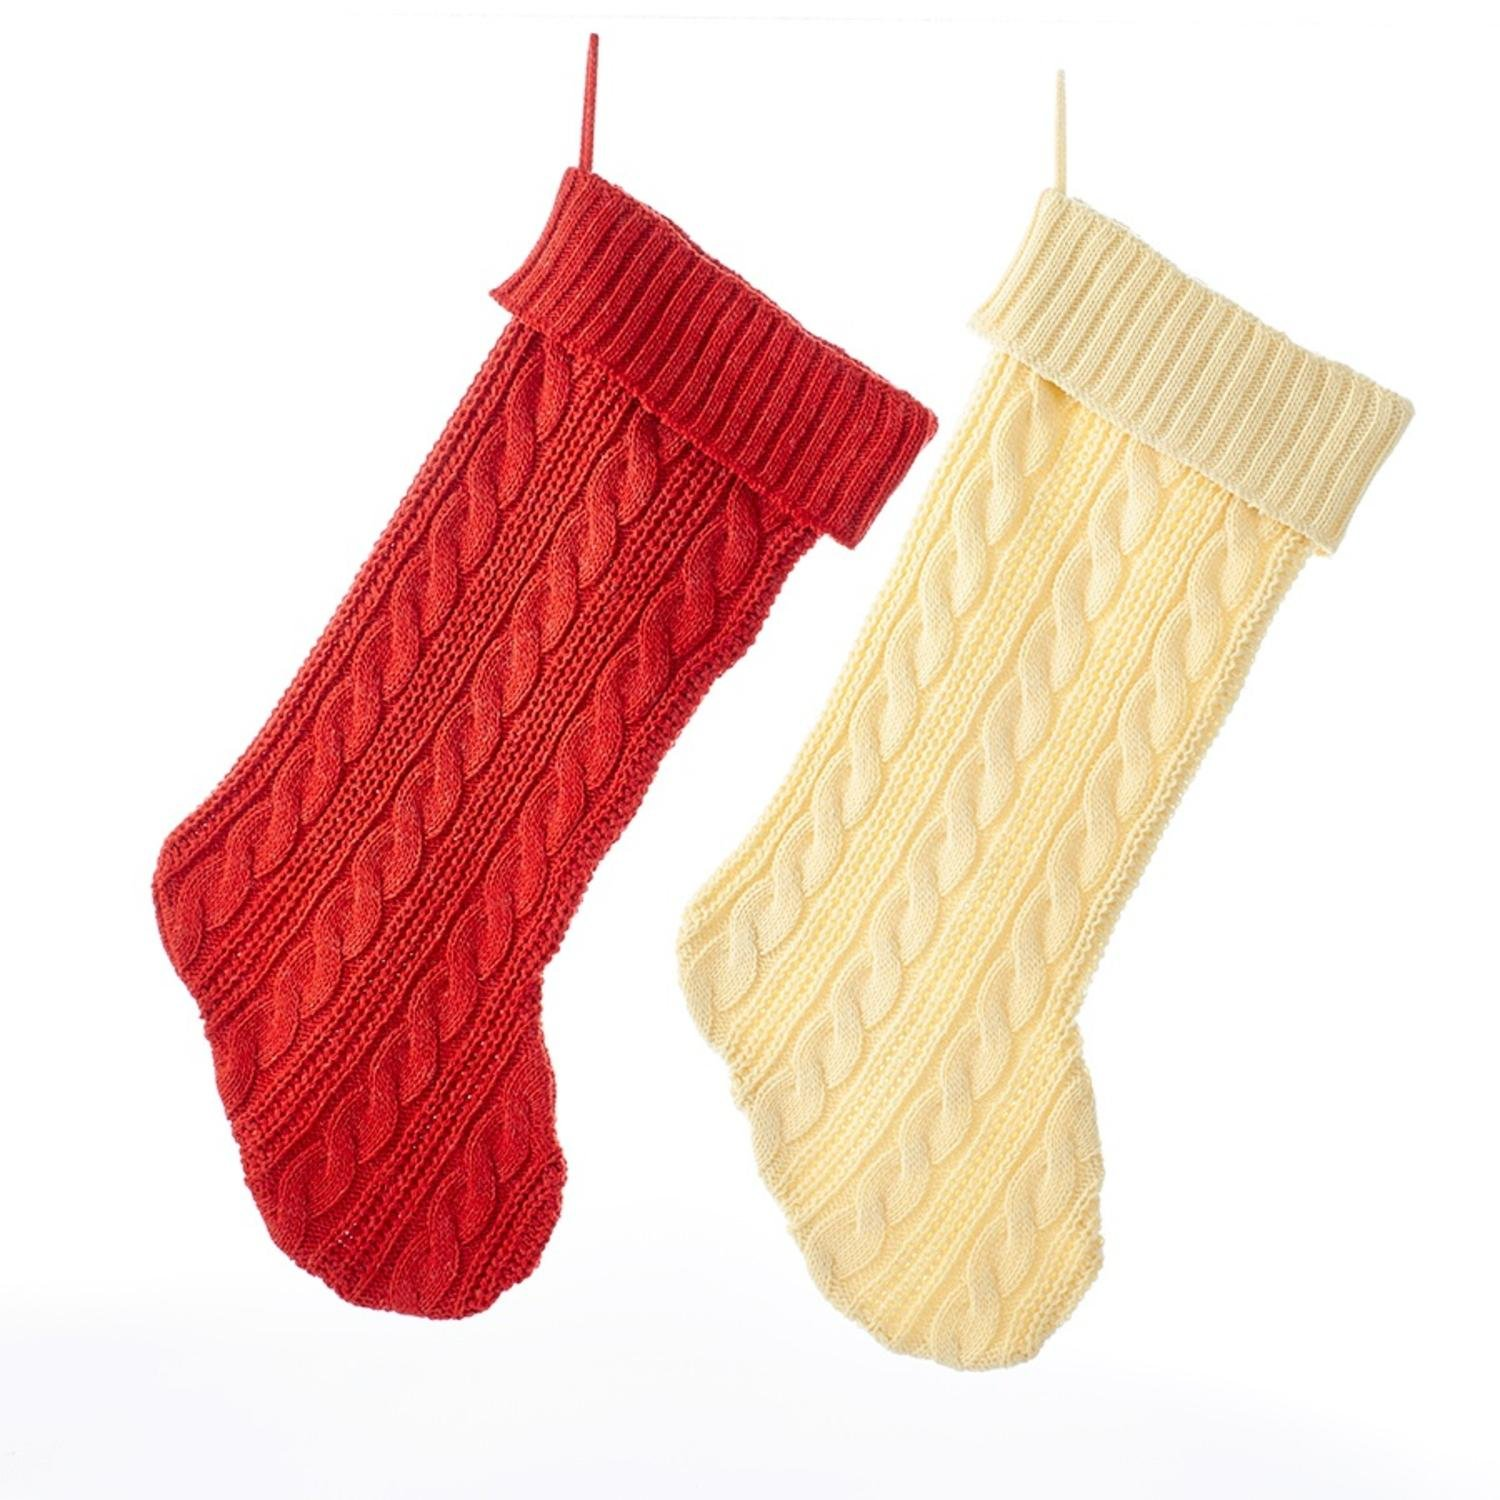 Pack of 12 Solid Red and Solid Ivory Cable Knit Christmas Stockings 20''